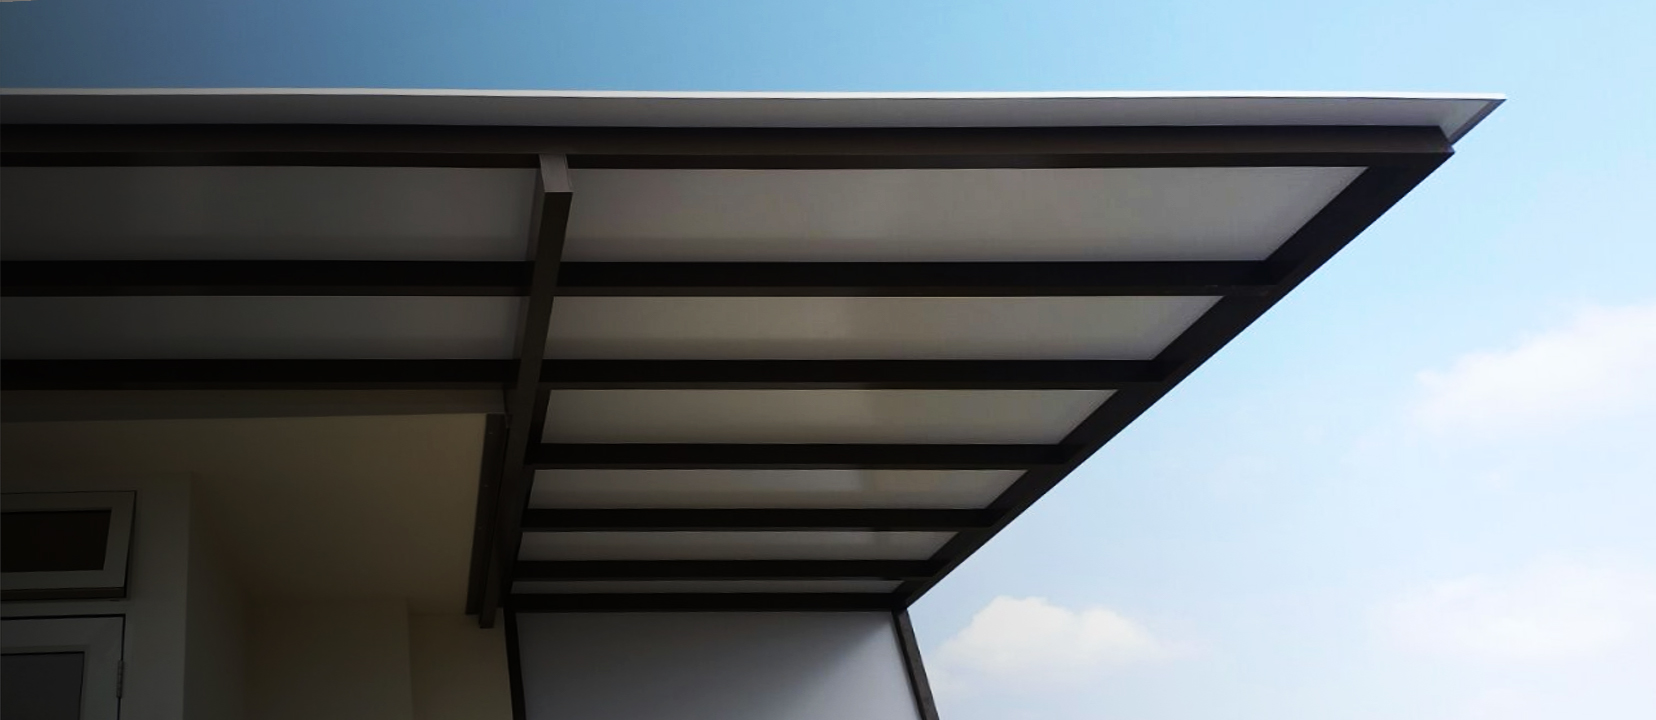 composite roof awning